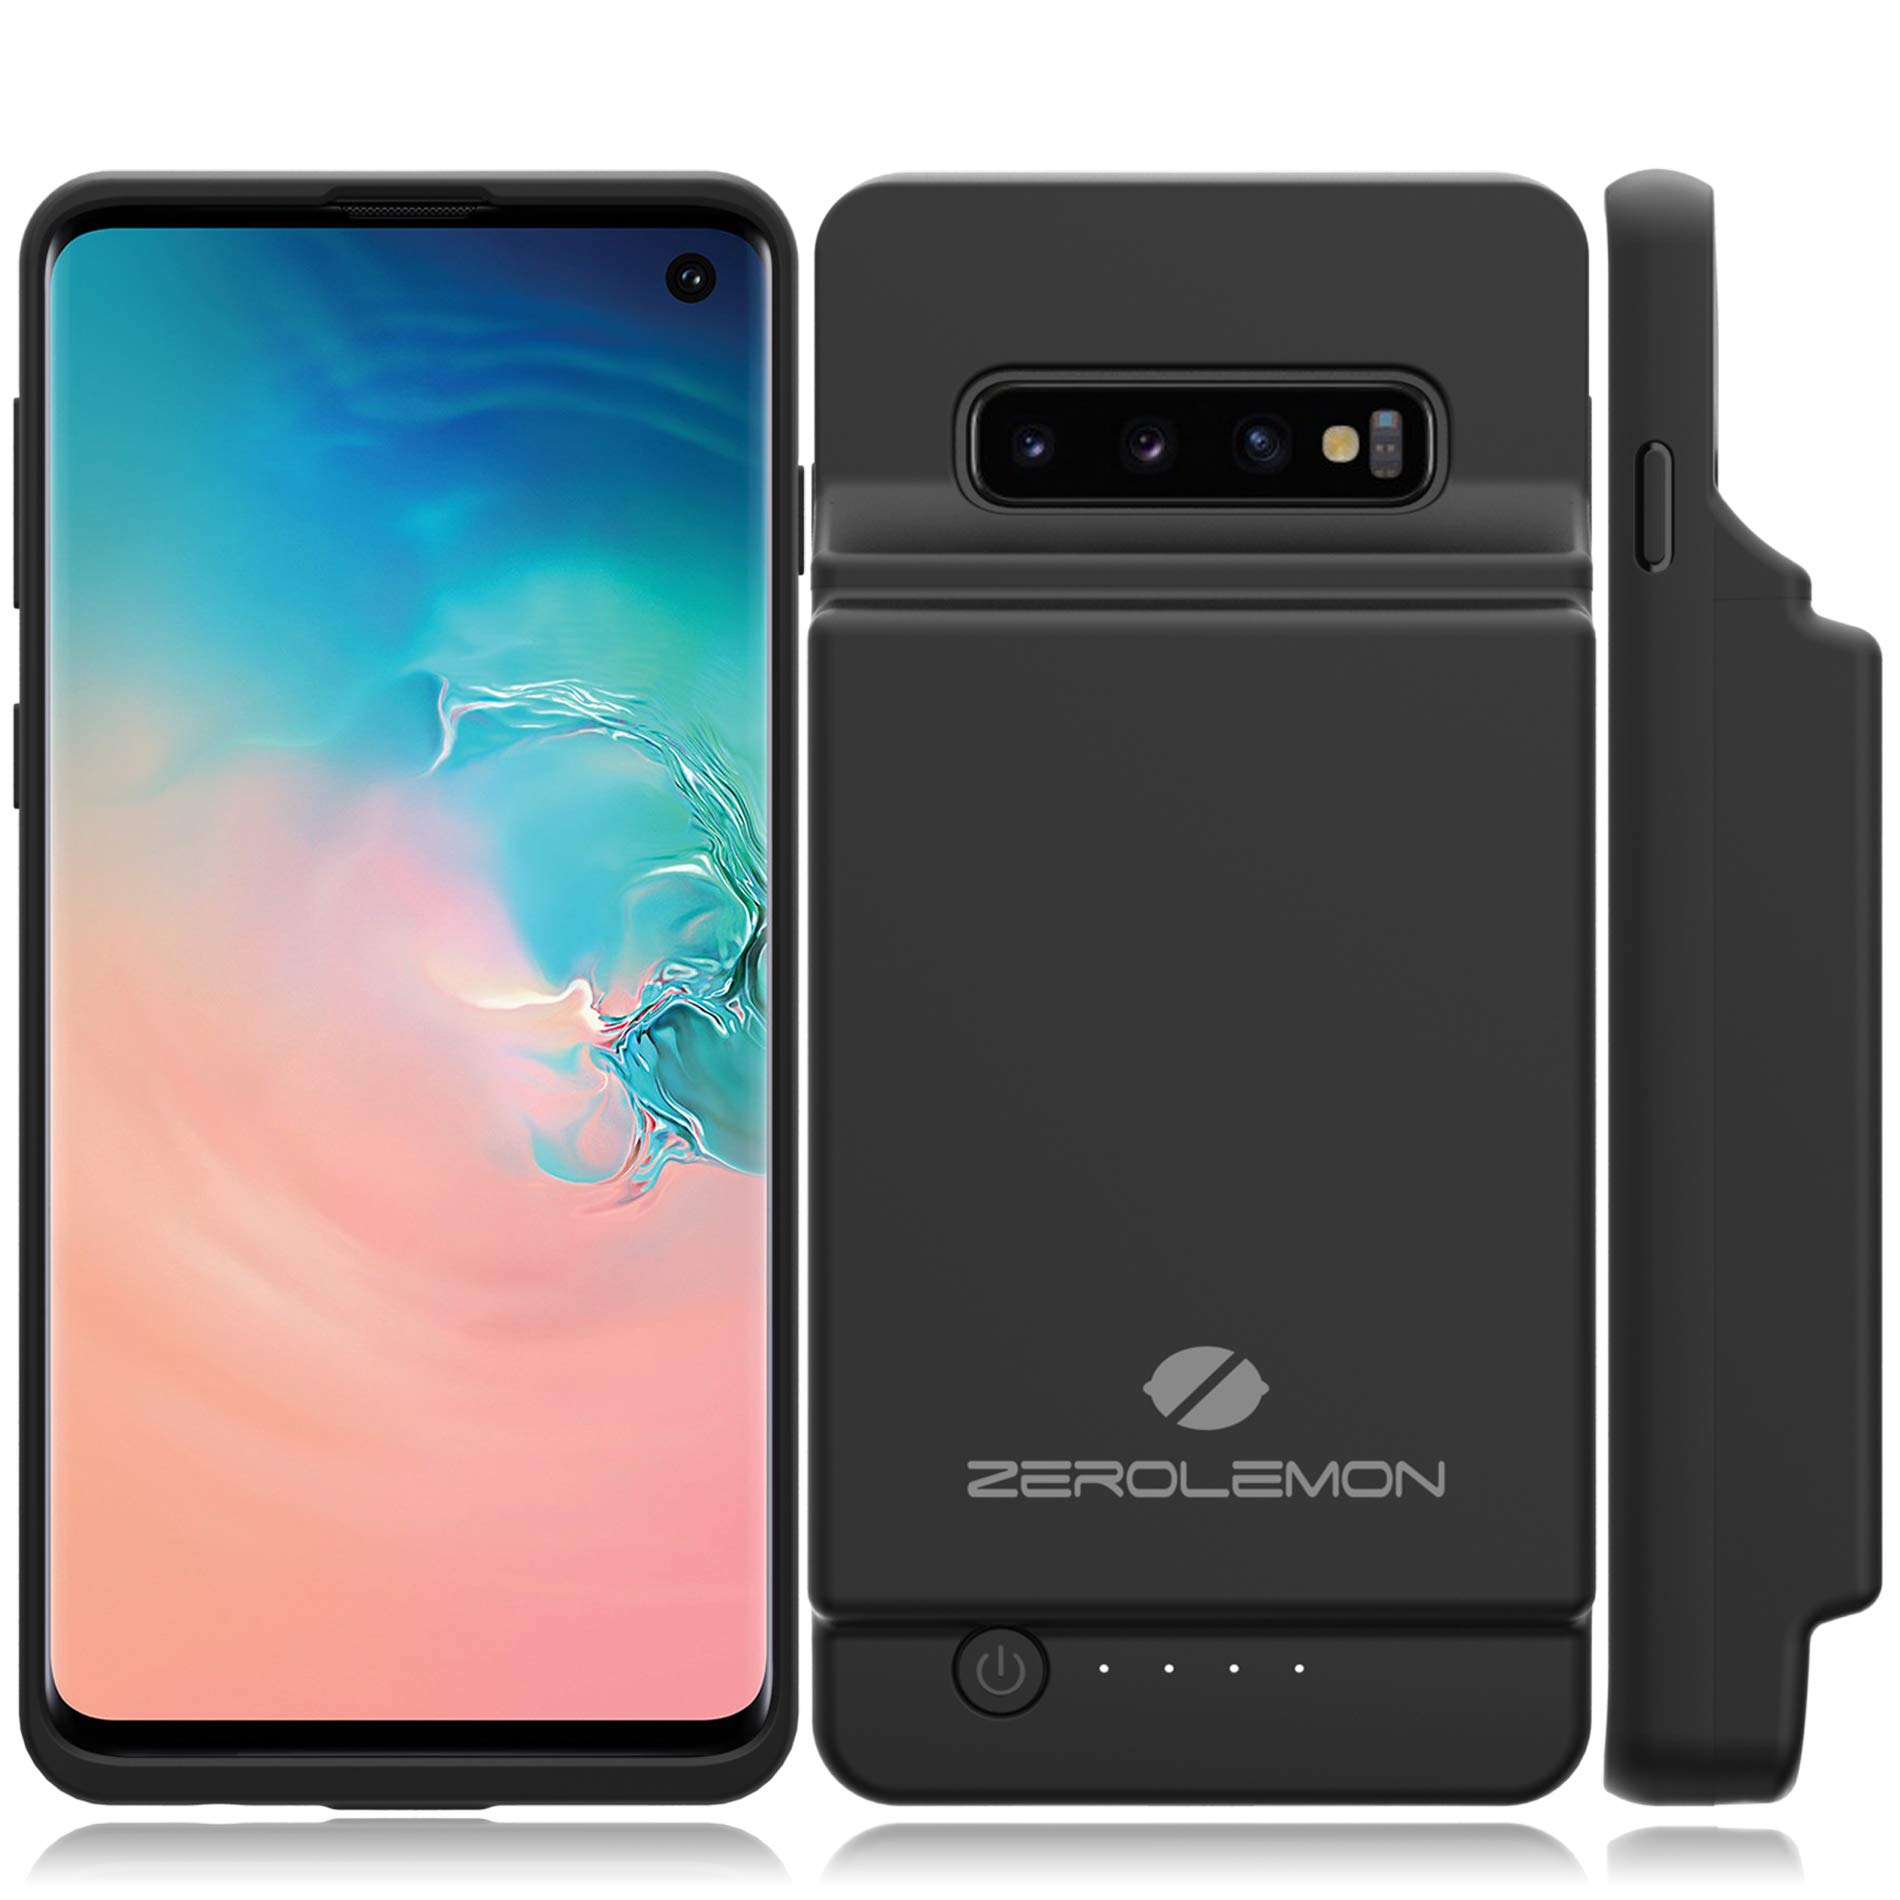 Galaxy S10 Extended Battery Case, ZeroLemon Ultra Power 8000mAh Extended Rechargeable Battery Case with Full Edge Protection for Samsung Galaxy S10 - Black